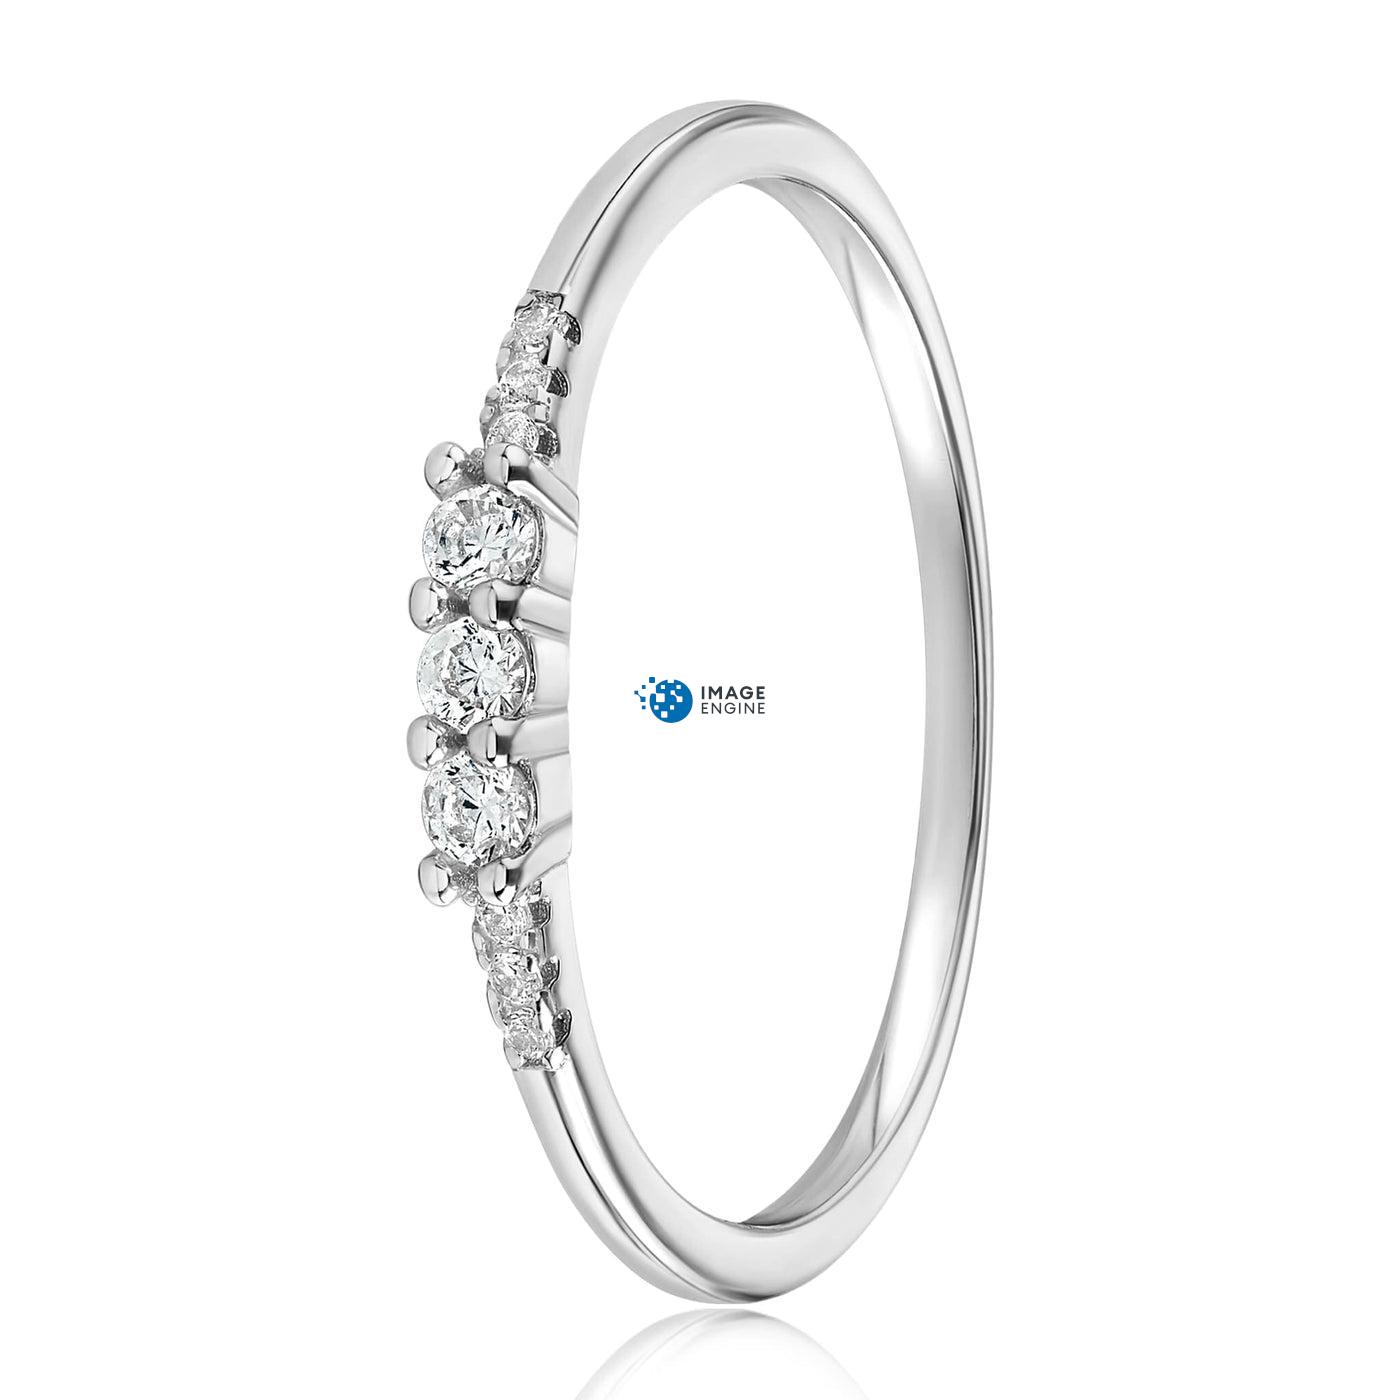 Emie Ring - Side View - 925 Sterling Silver